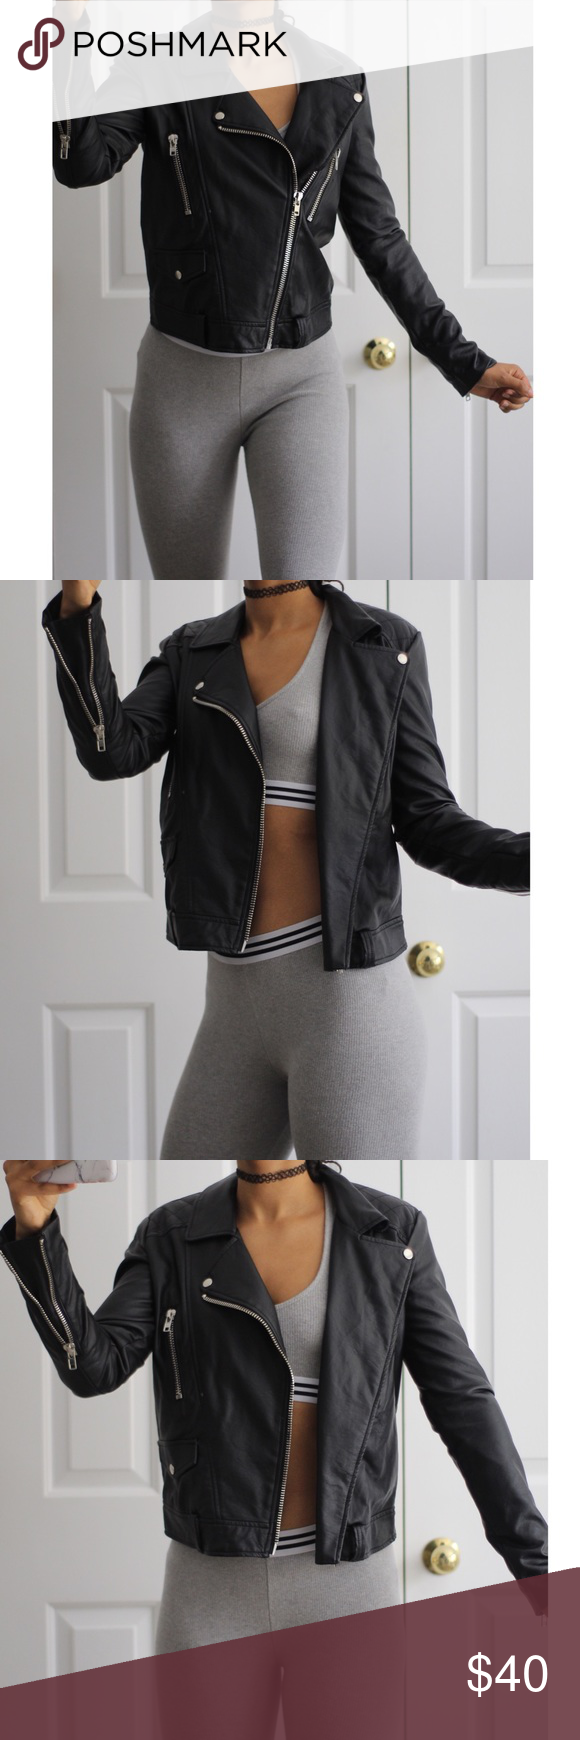 Forever 21 Faux Leather Jacket Leather jacket brands